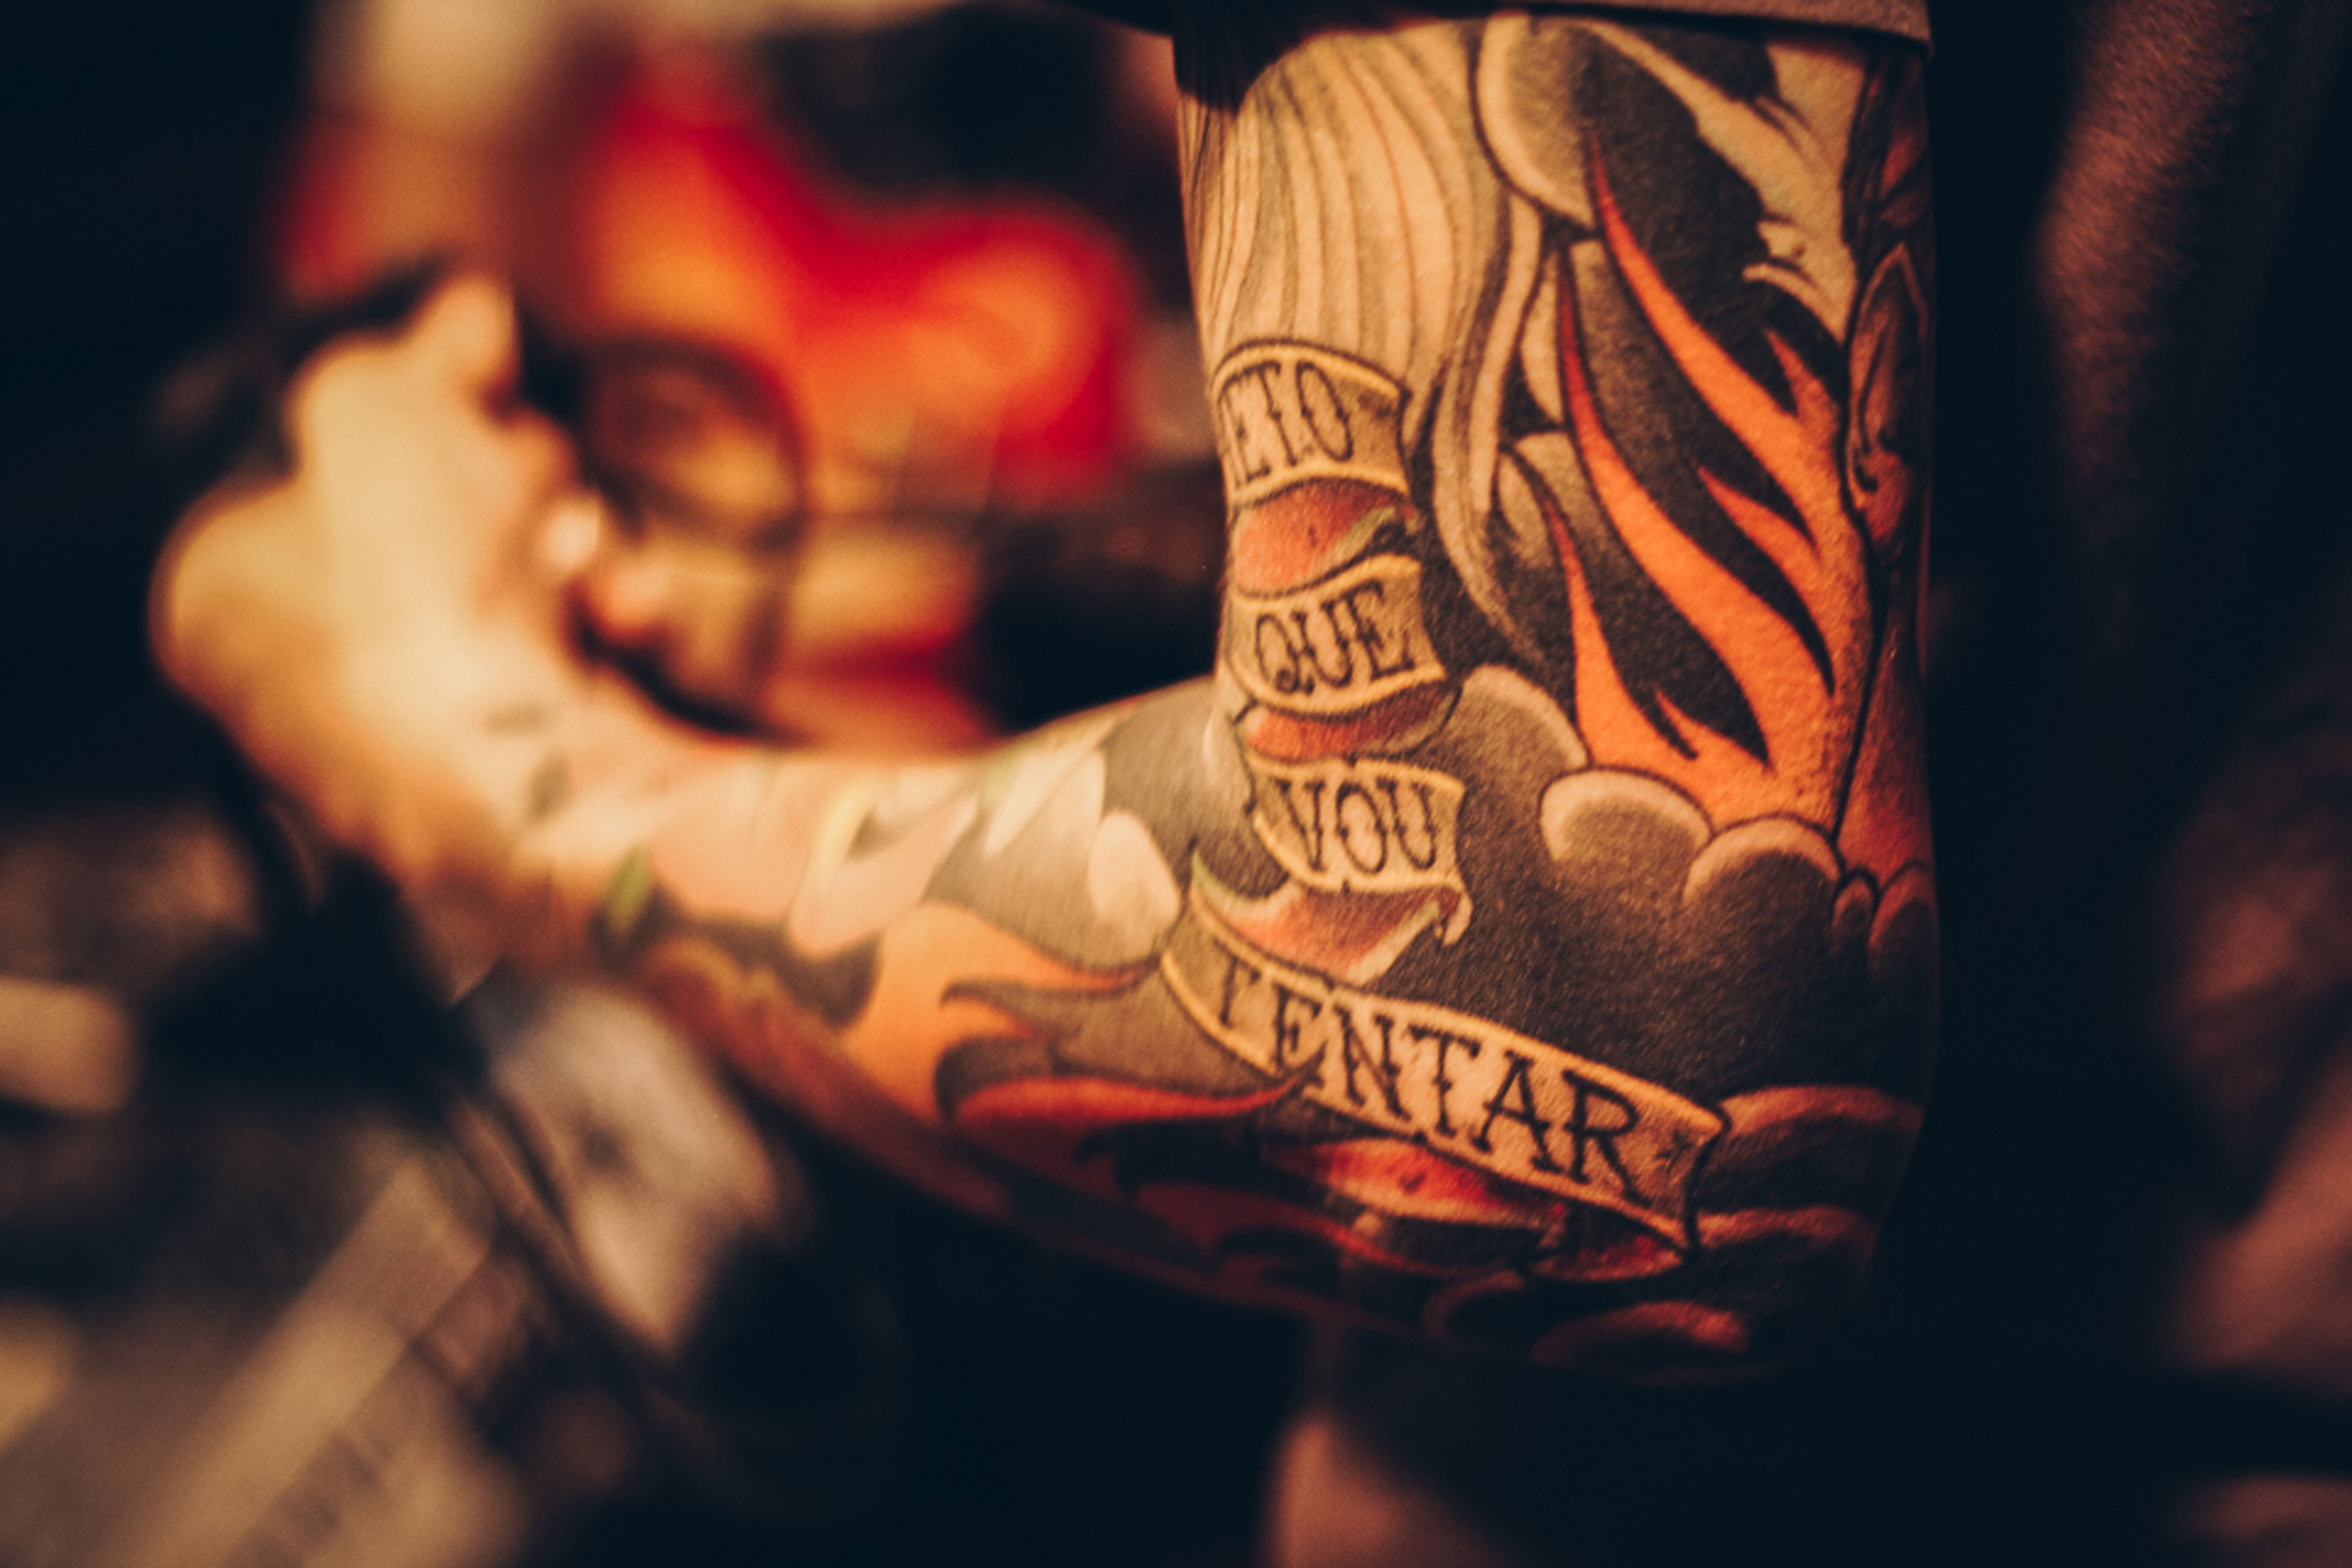 Sleeve Tattoo | Unsplash